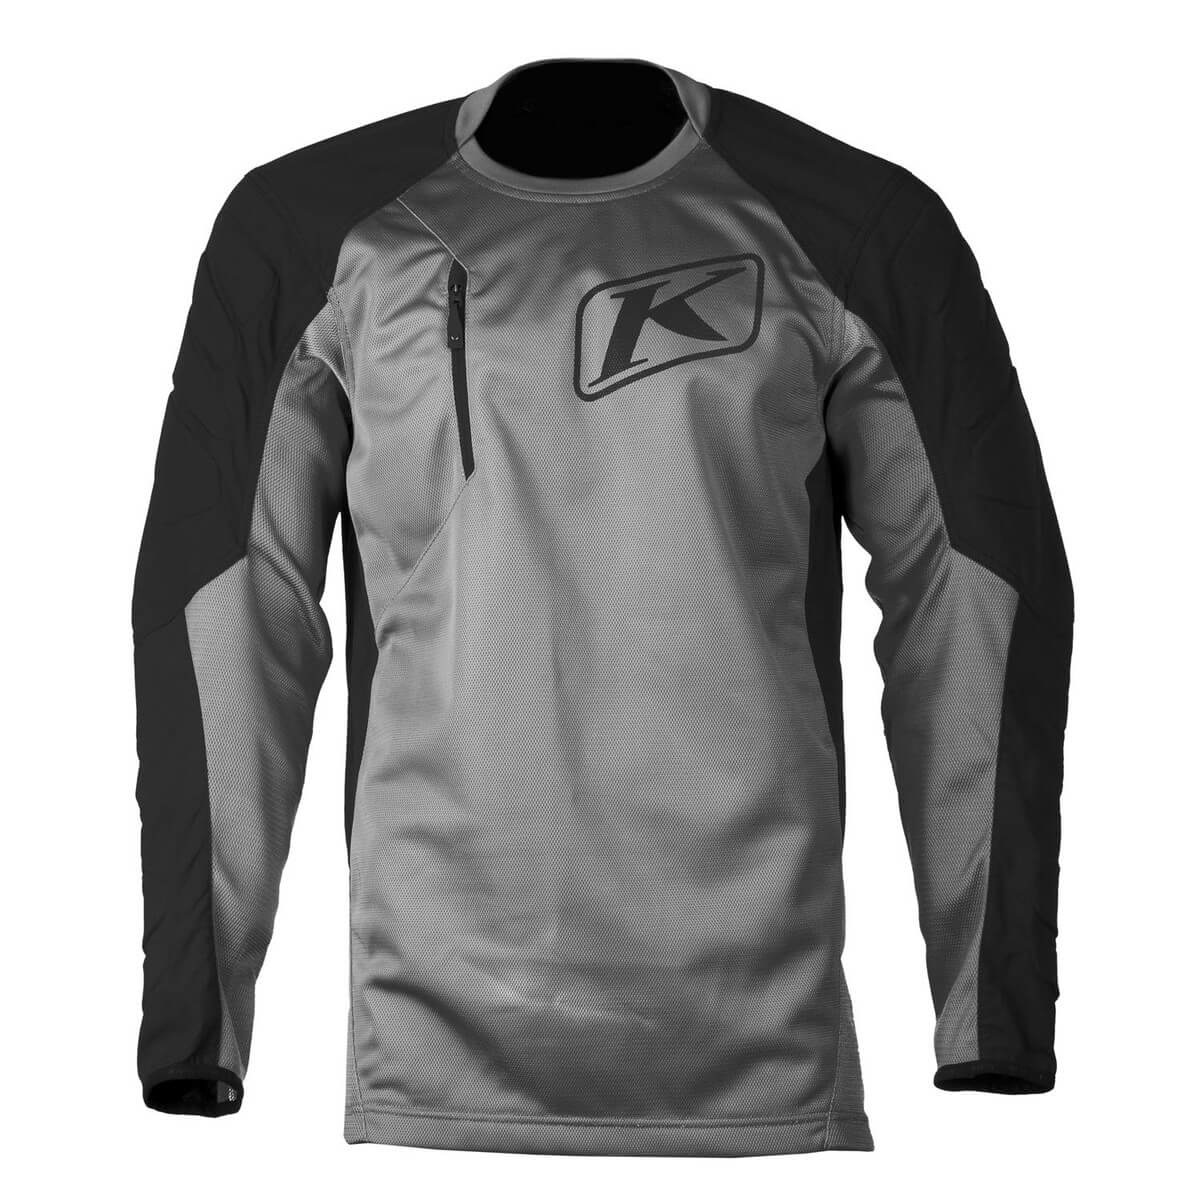 Tactical Pro Jersey - Gray